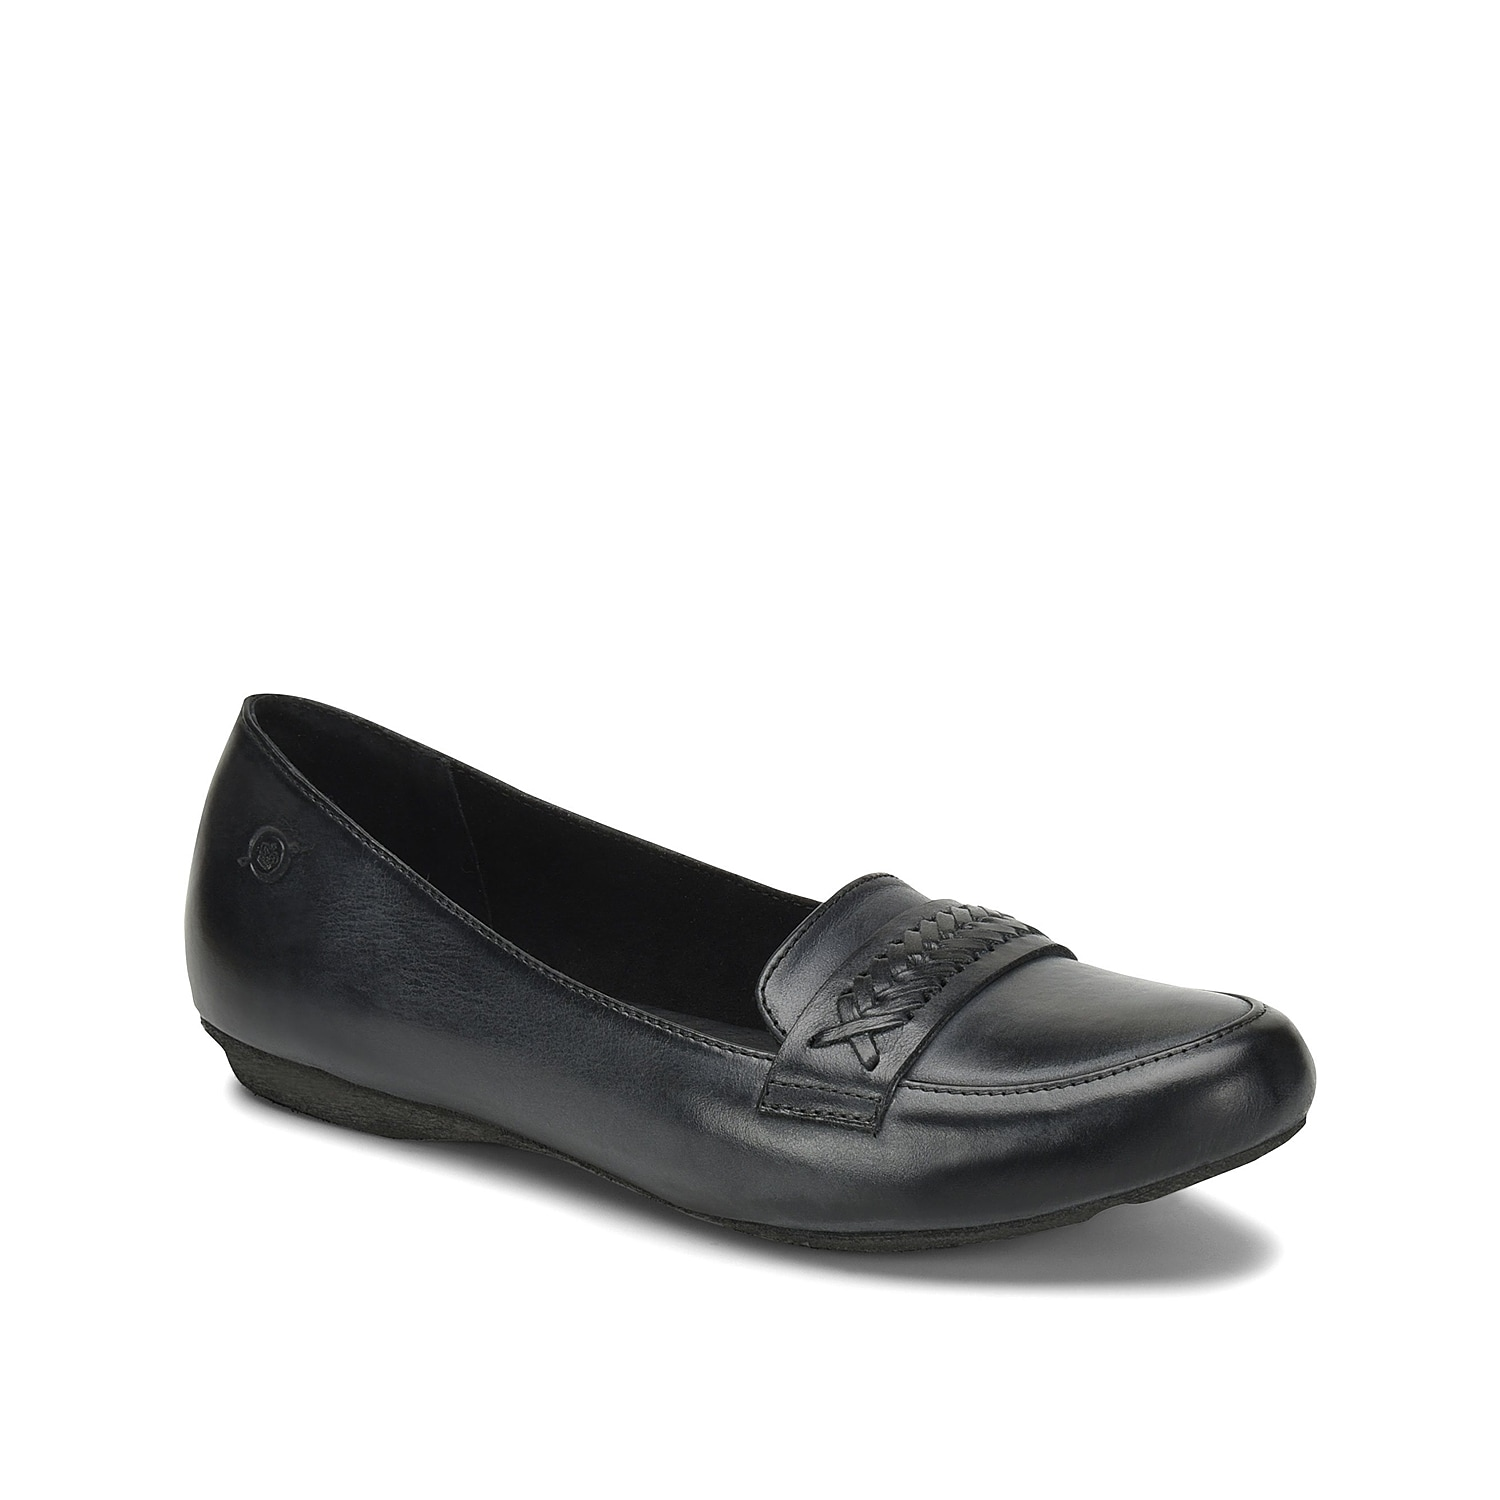 Embrace casual cool style with the Alkia loafer from Born. A woven strap accent and comfortable leather lining will make this pair your new favorite.